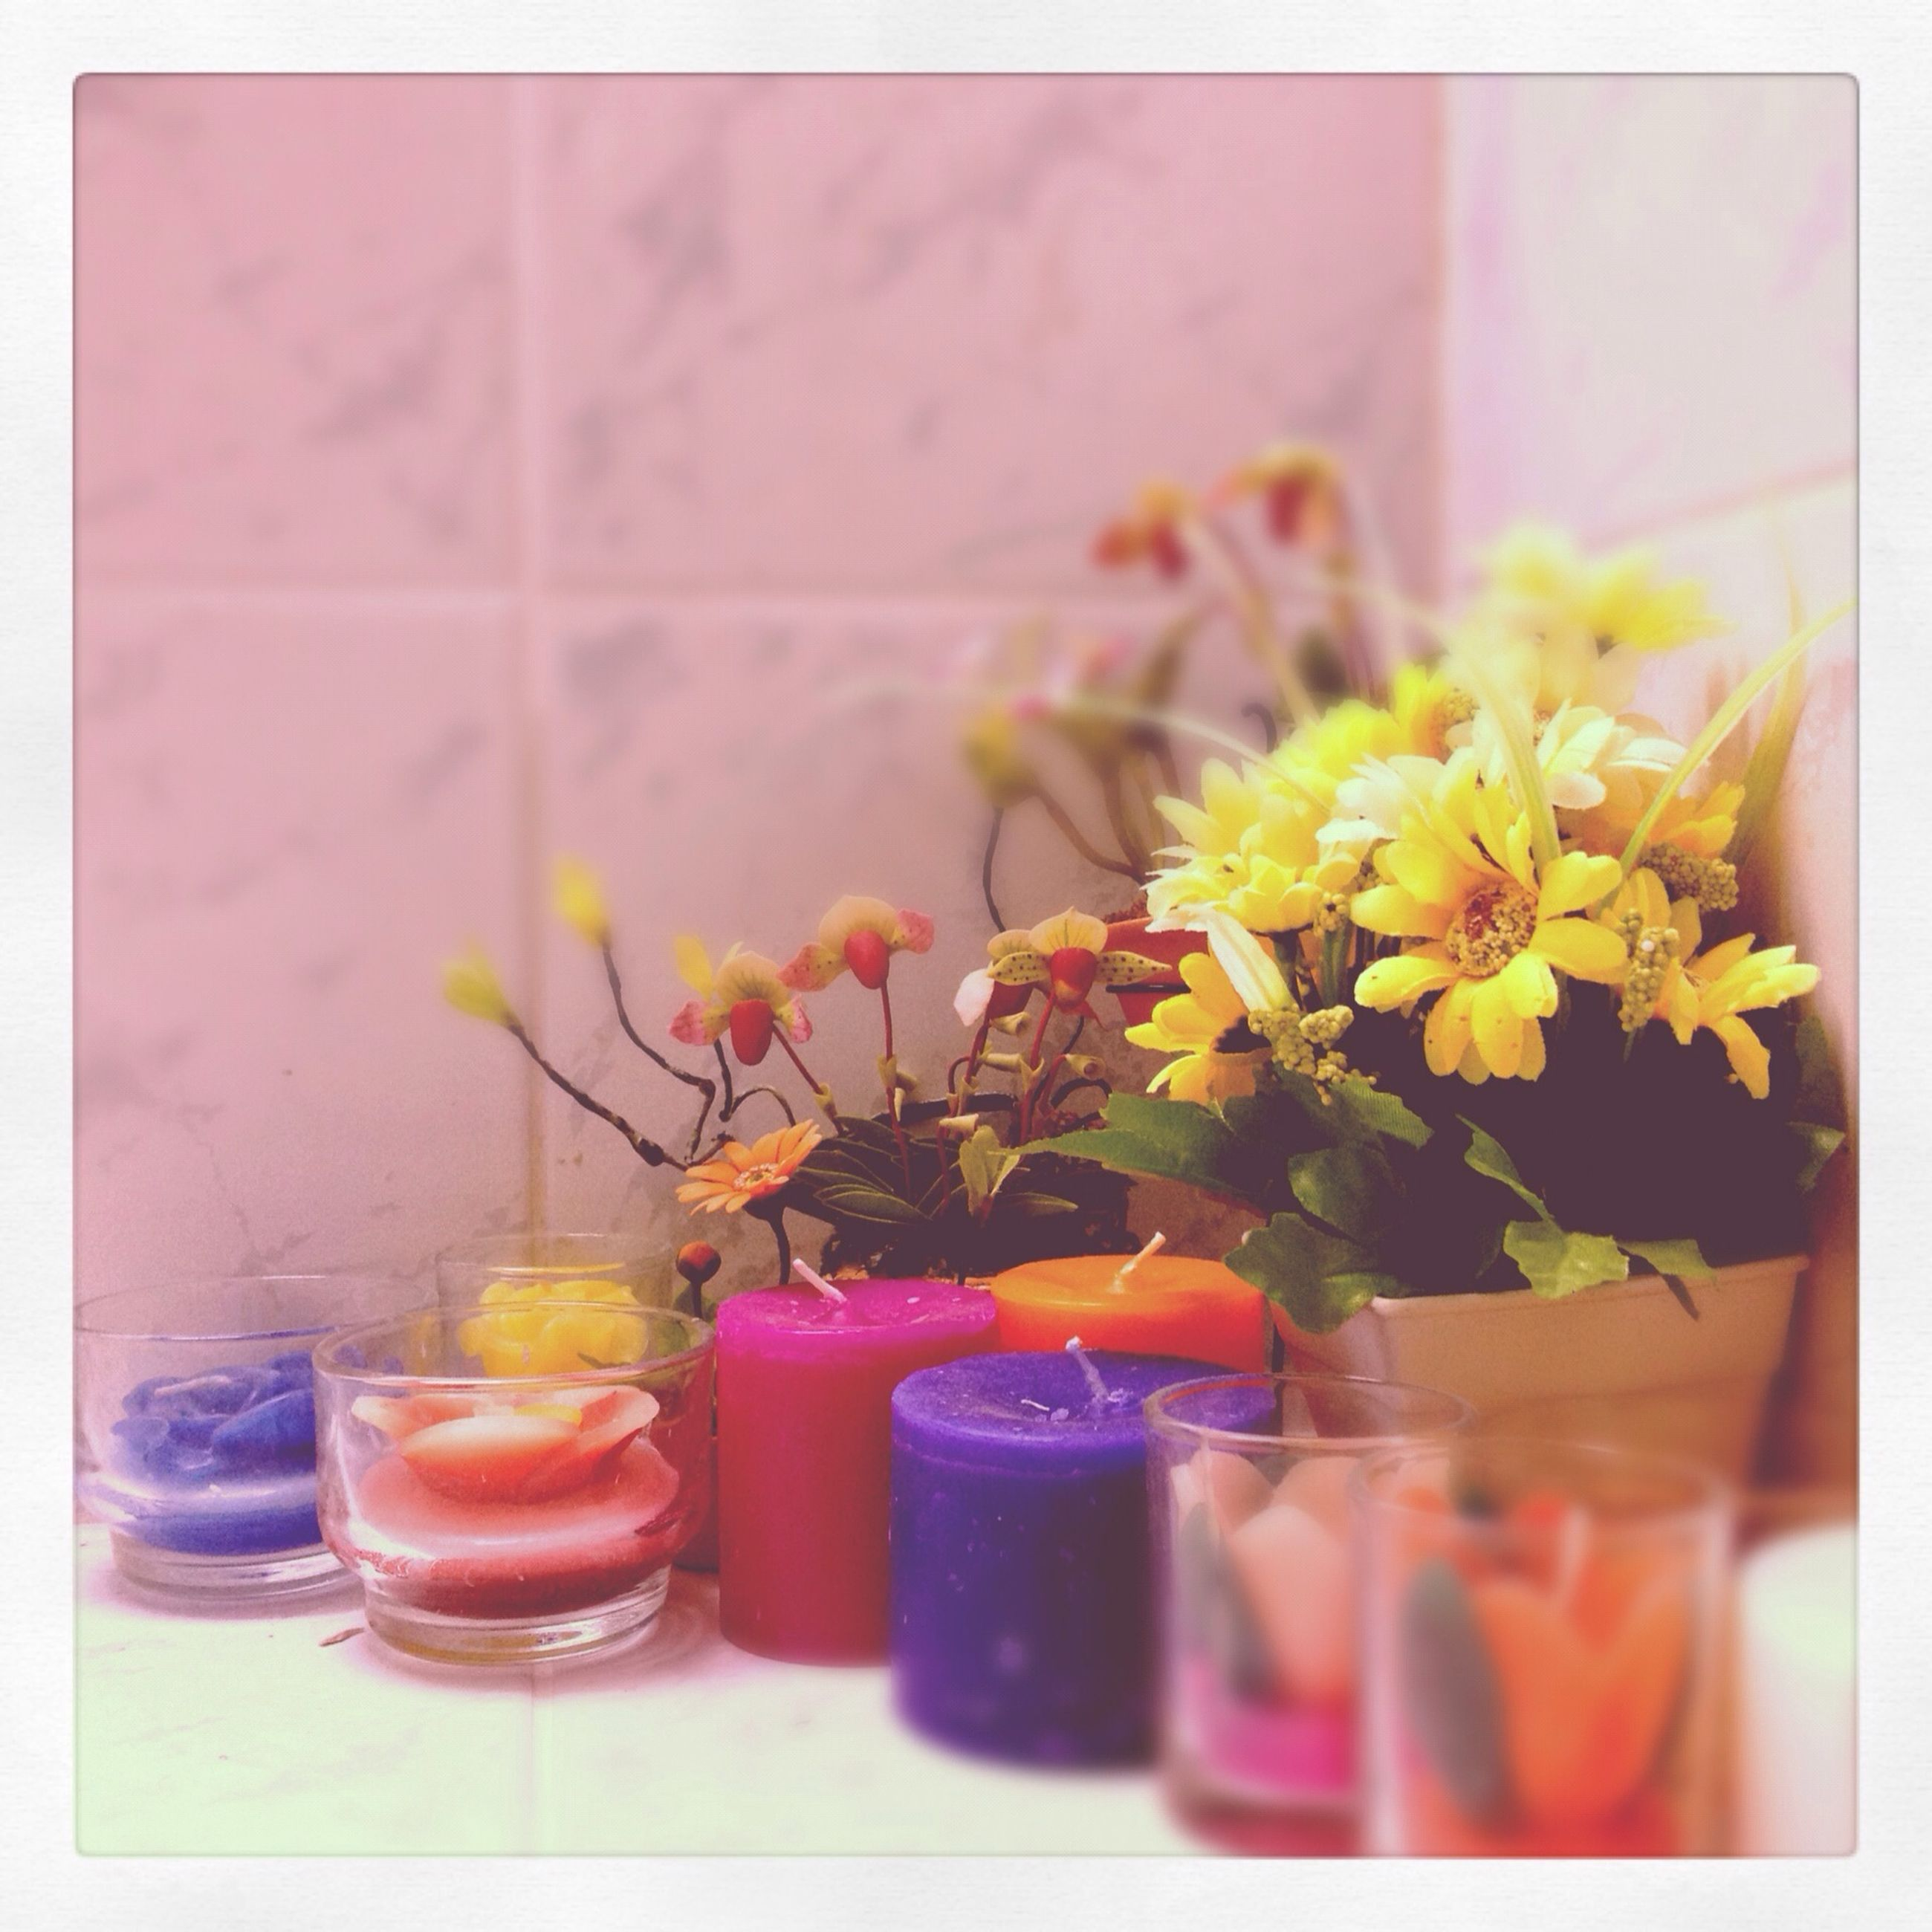 indoors, flower, freshness, transfer print, vase, table, auto post production filter, still life, glass - material, potted plant, food and drink, fragility, close-up, home interior, jar, transparent, bottle, flower pot, no people, plant